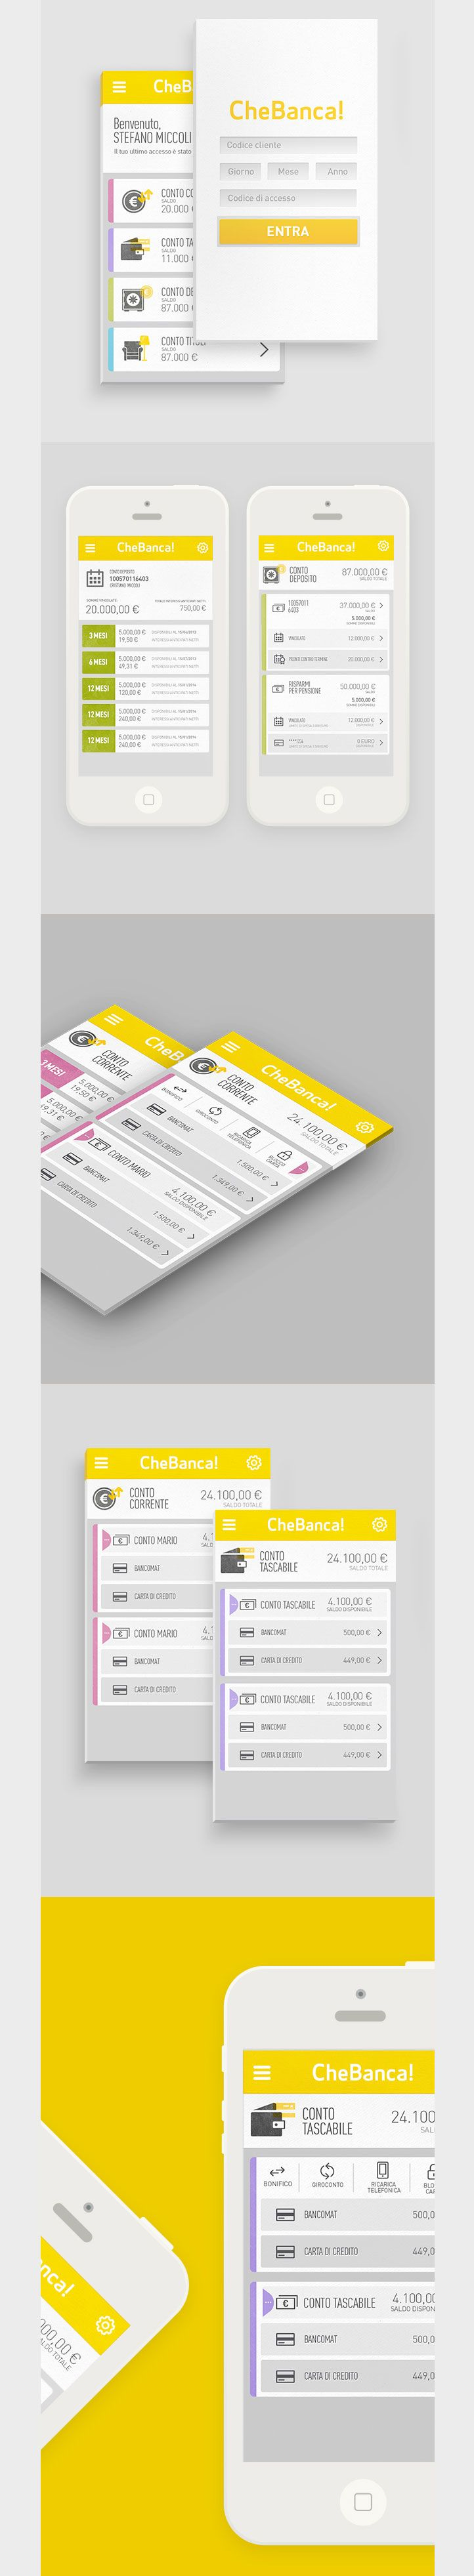 Sexiest design of a Banking App I've seen so far.